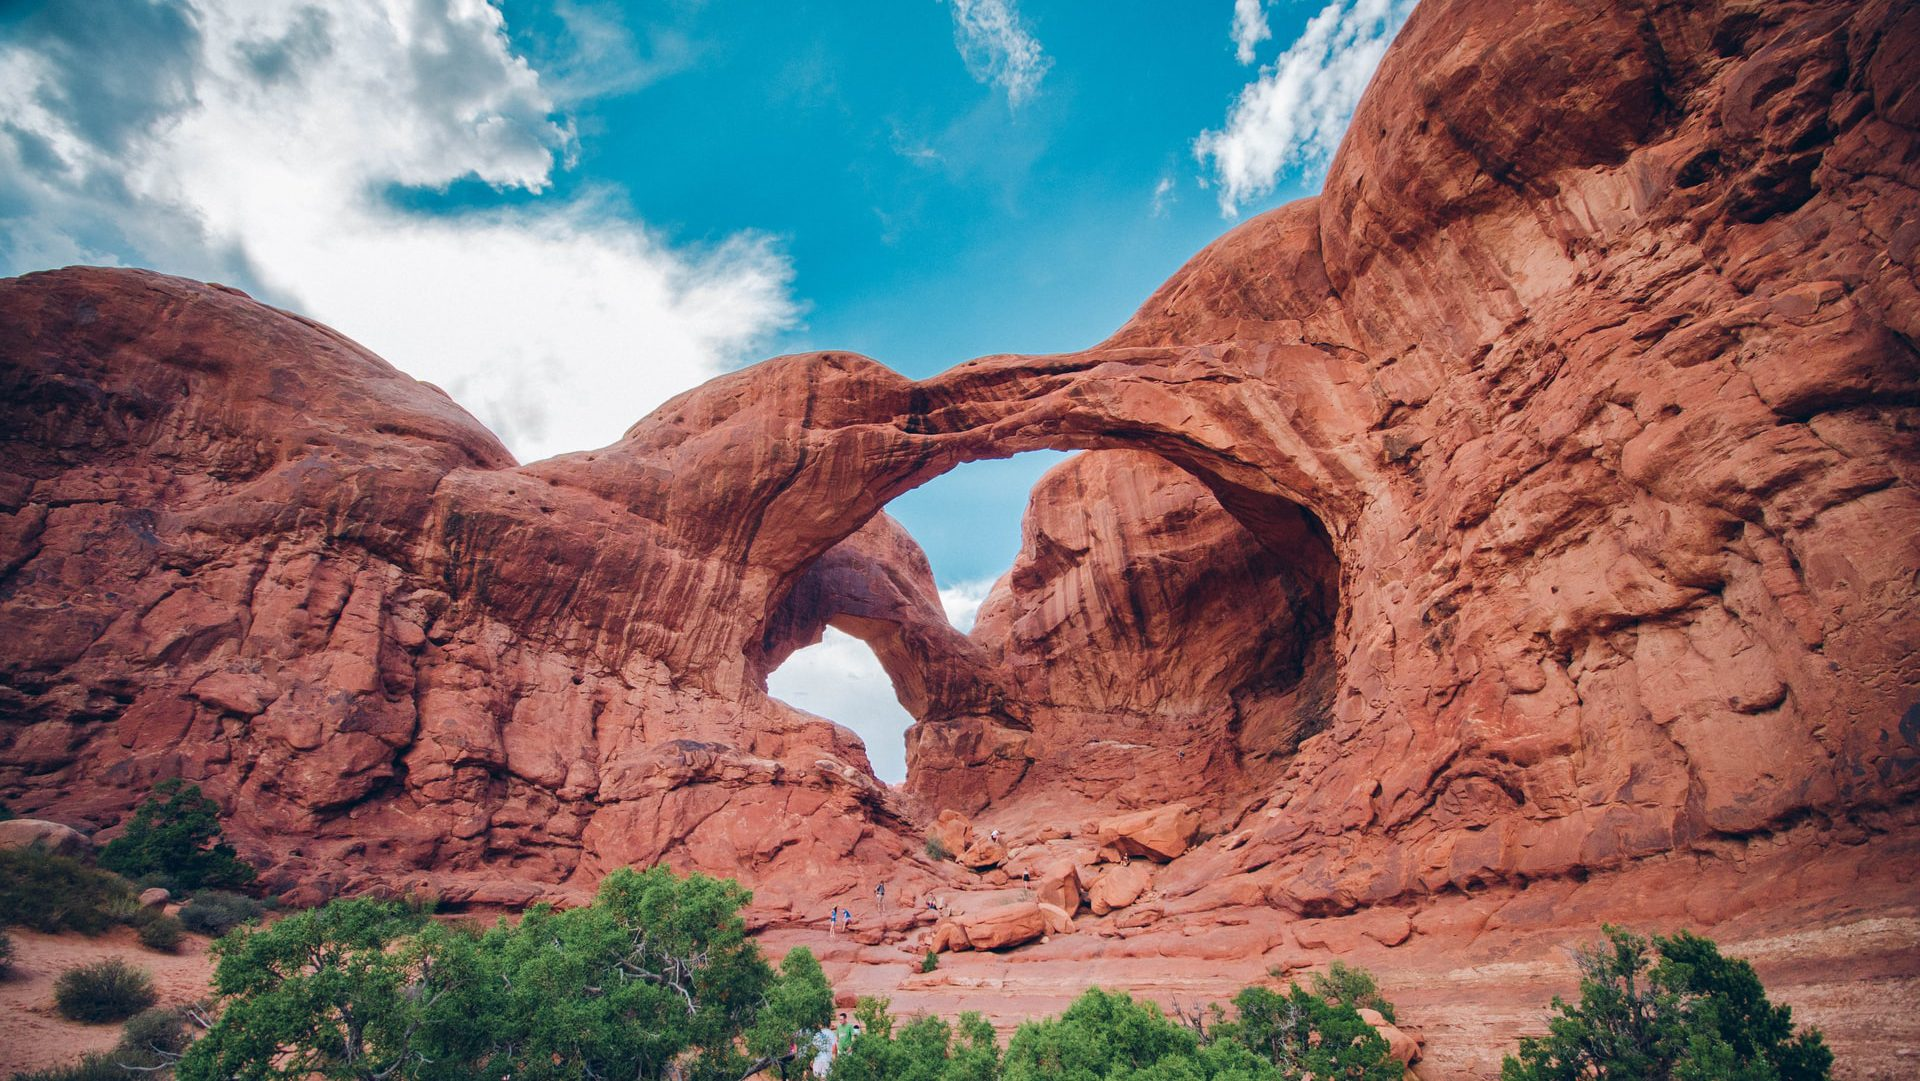 Visiting Arches National Park in Utah equals a trip-to-the-Mars experience